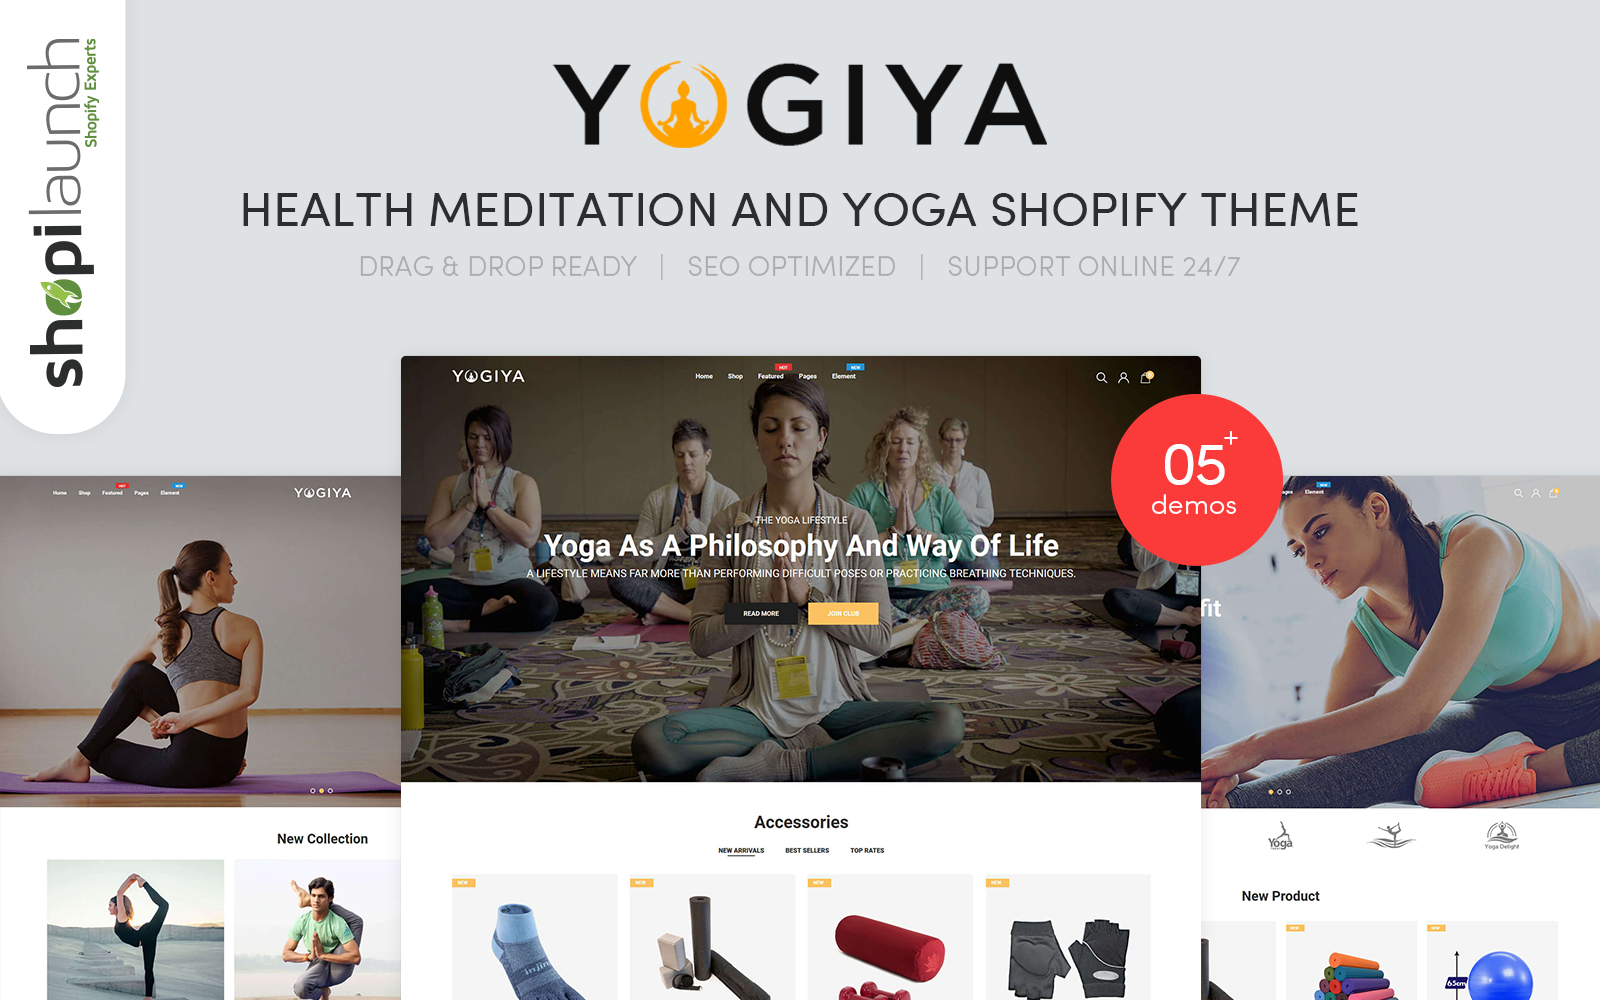 Yogiya - Health Meditation And Yoga Shopify Theme